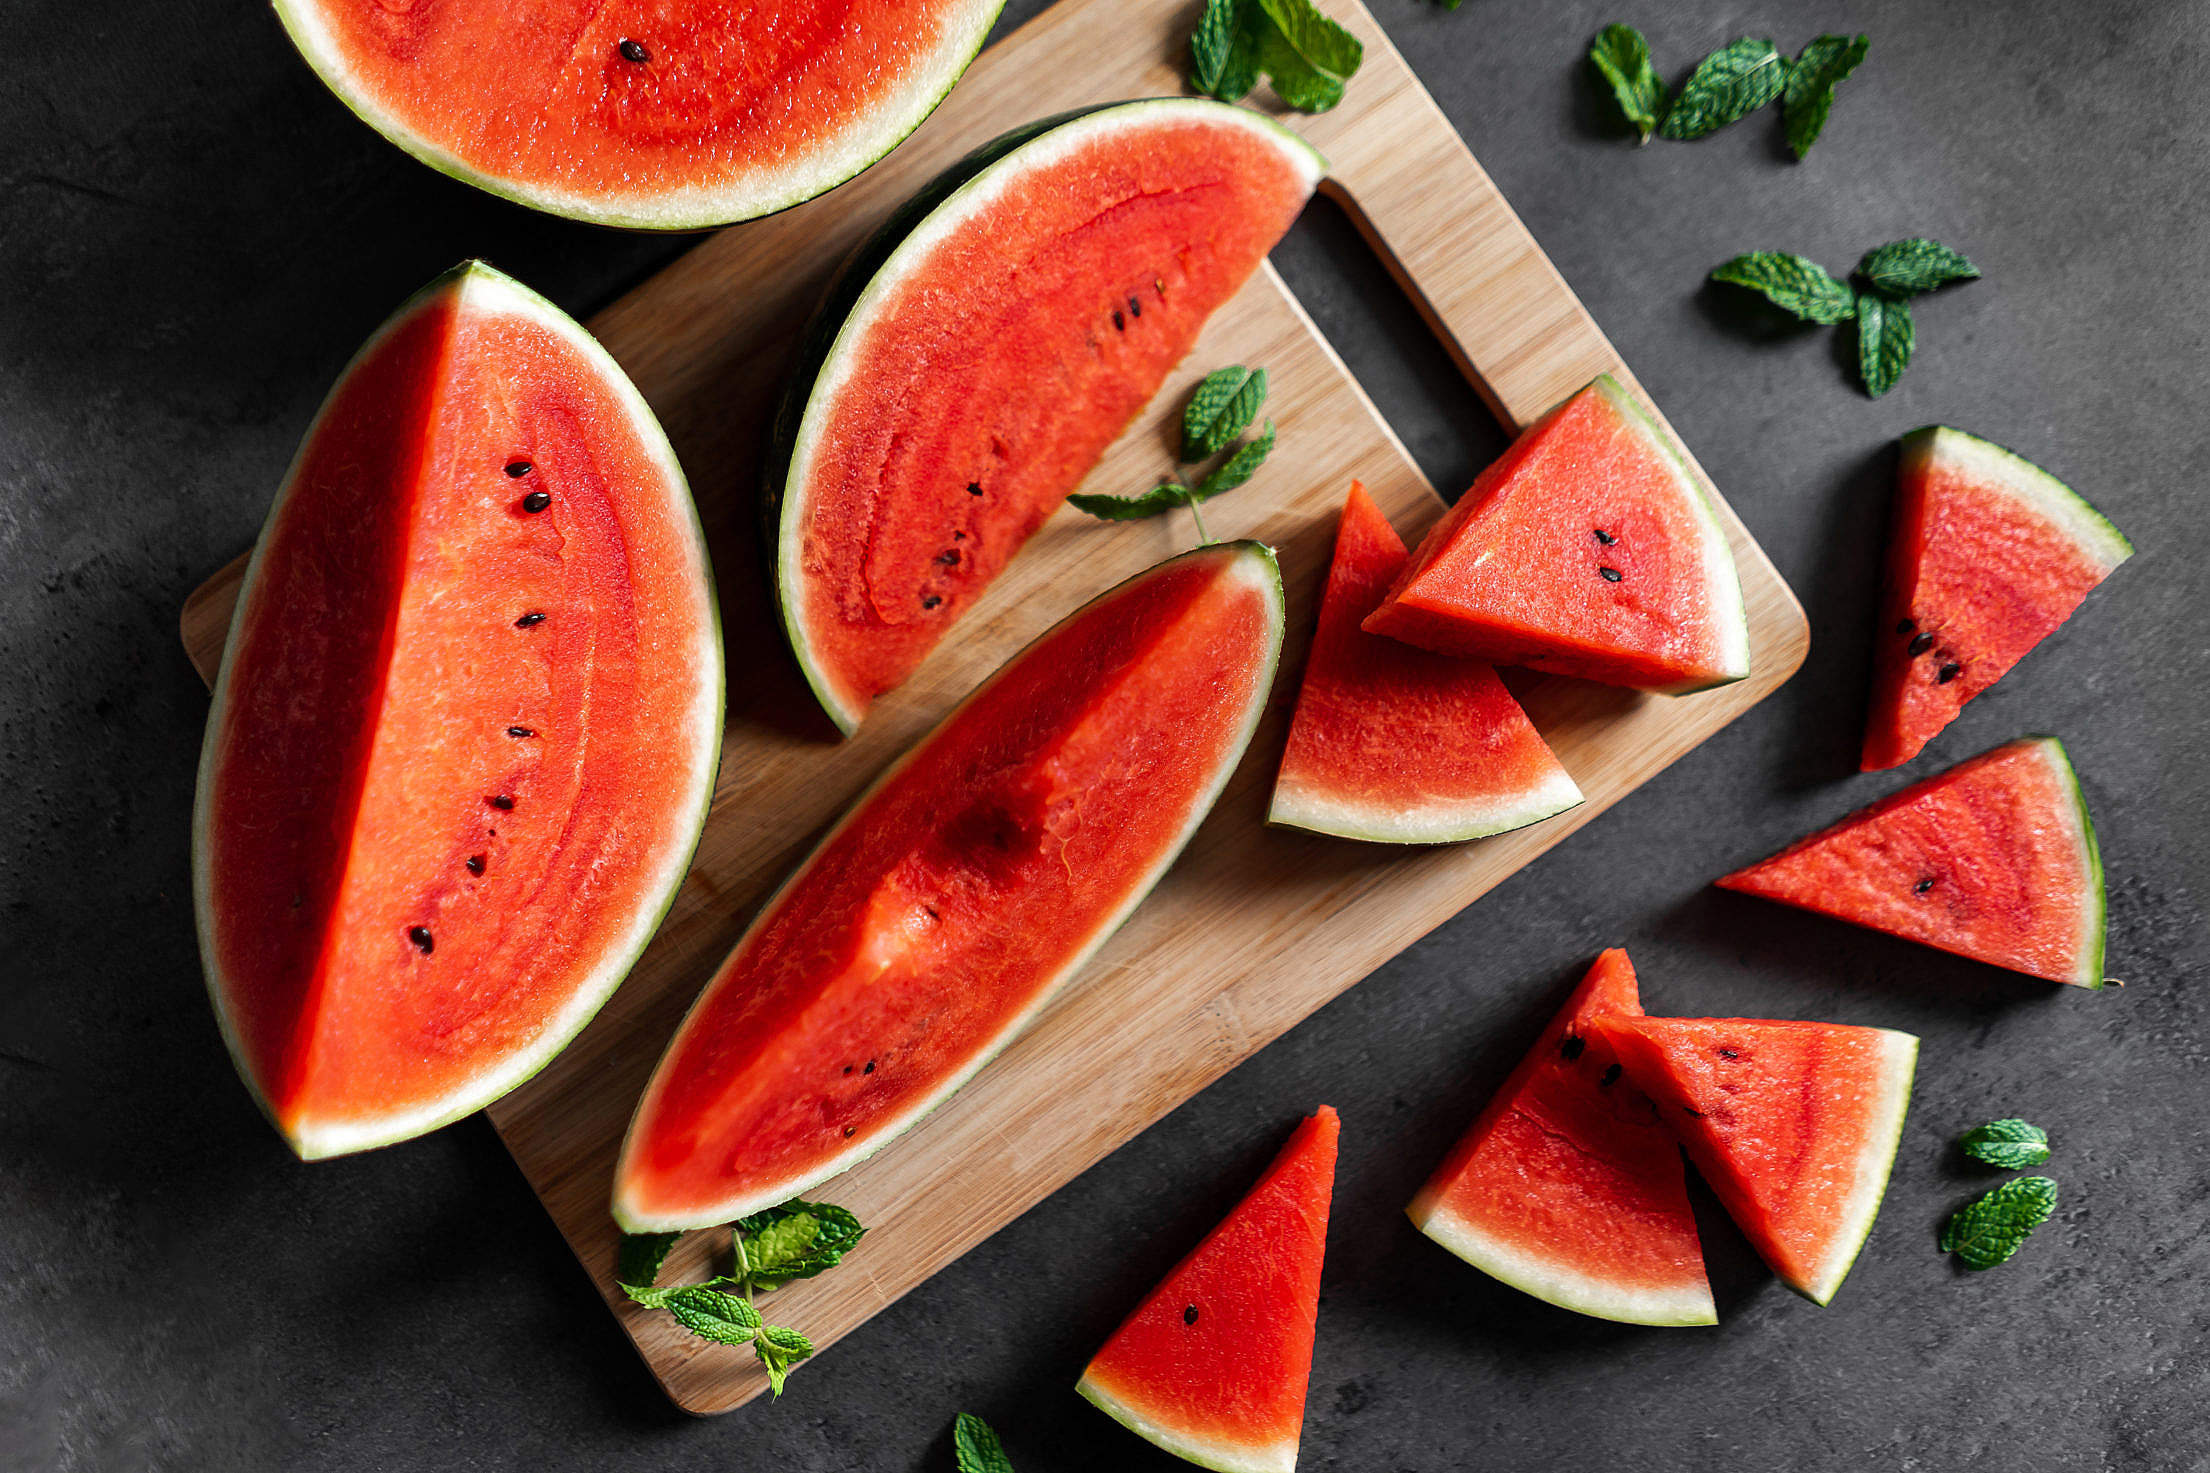 Watermelon Free Stock Photo